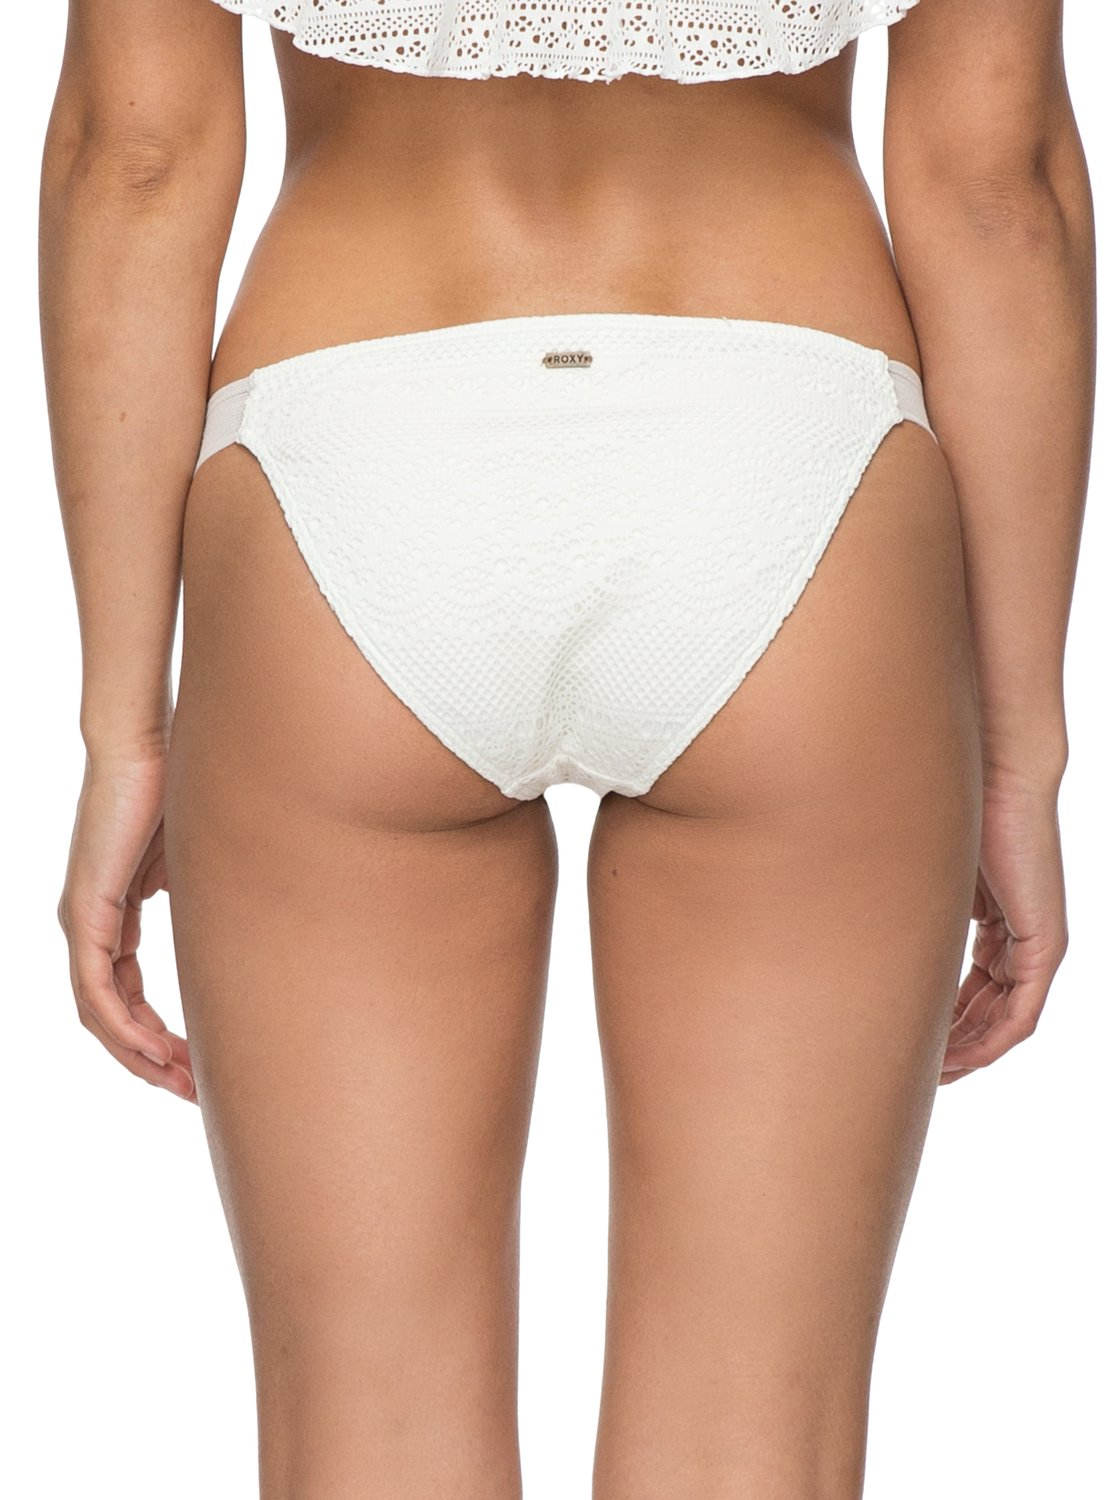 Roxy-Surf-Bride-Base-Girl-Bikini-Bottoms-Mujer